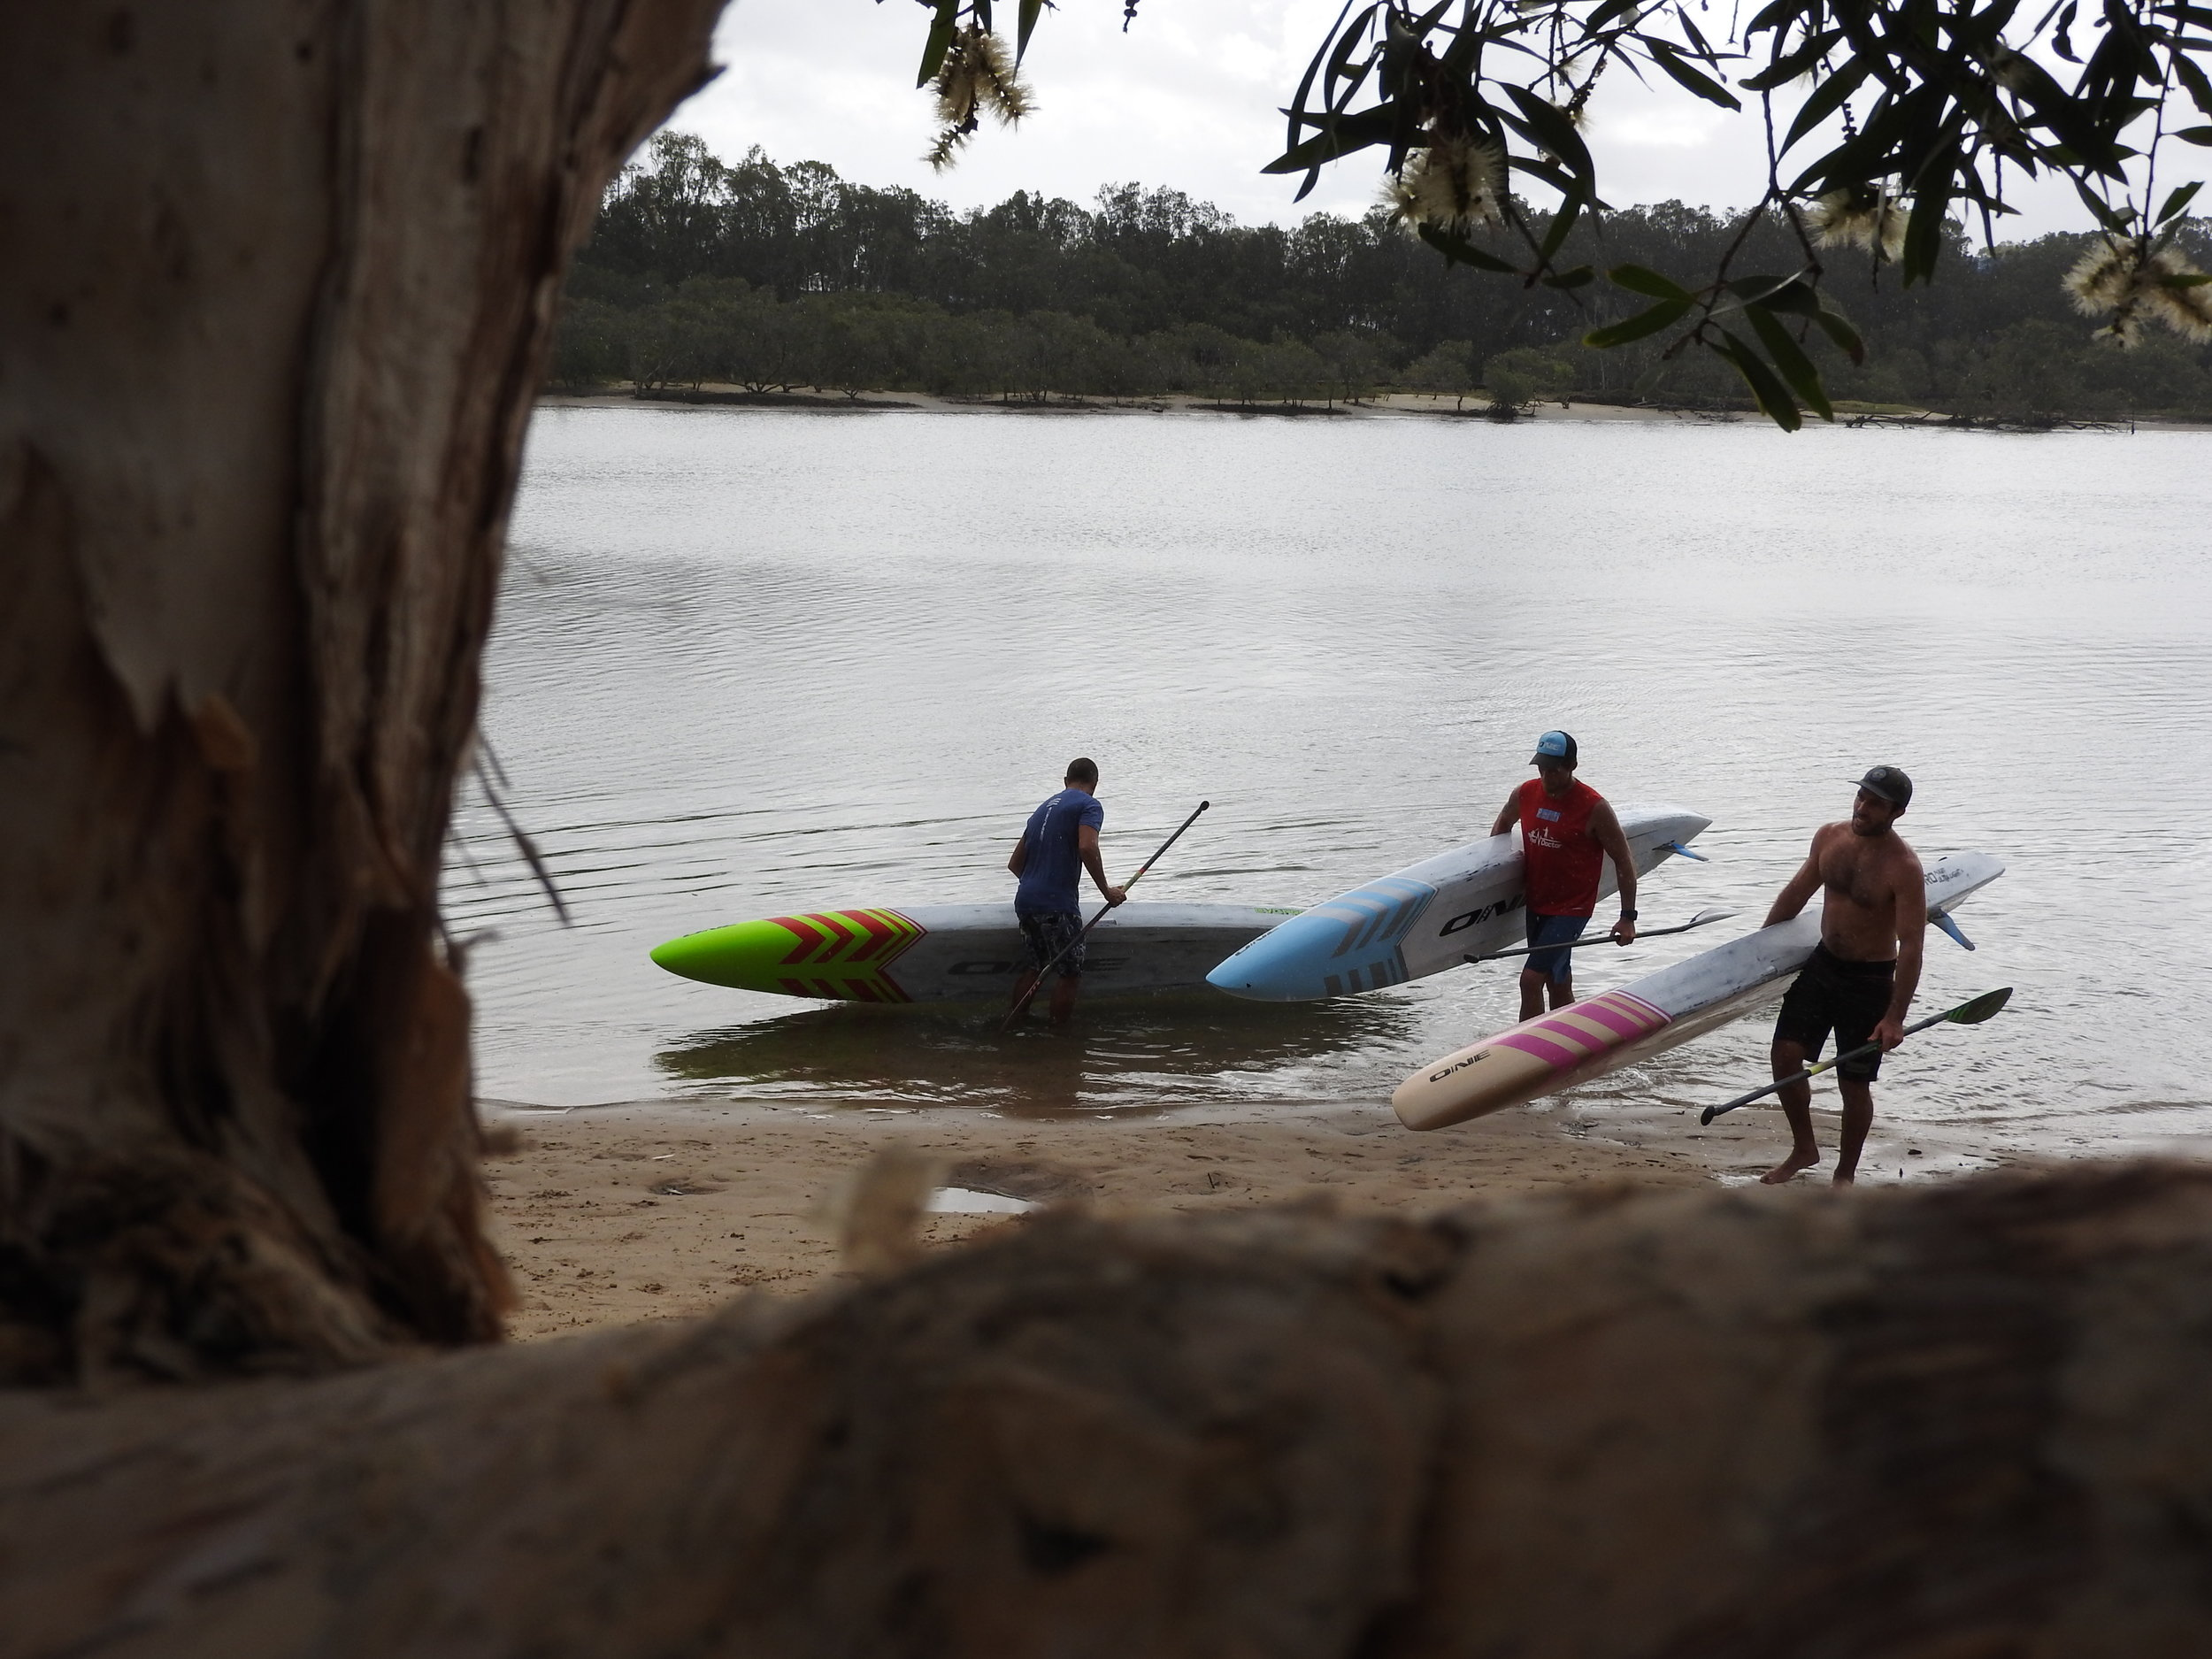 Jacko, Steve and Ben Testing Boards in Currumbin Creek / ONE HQ